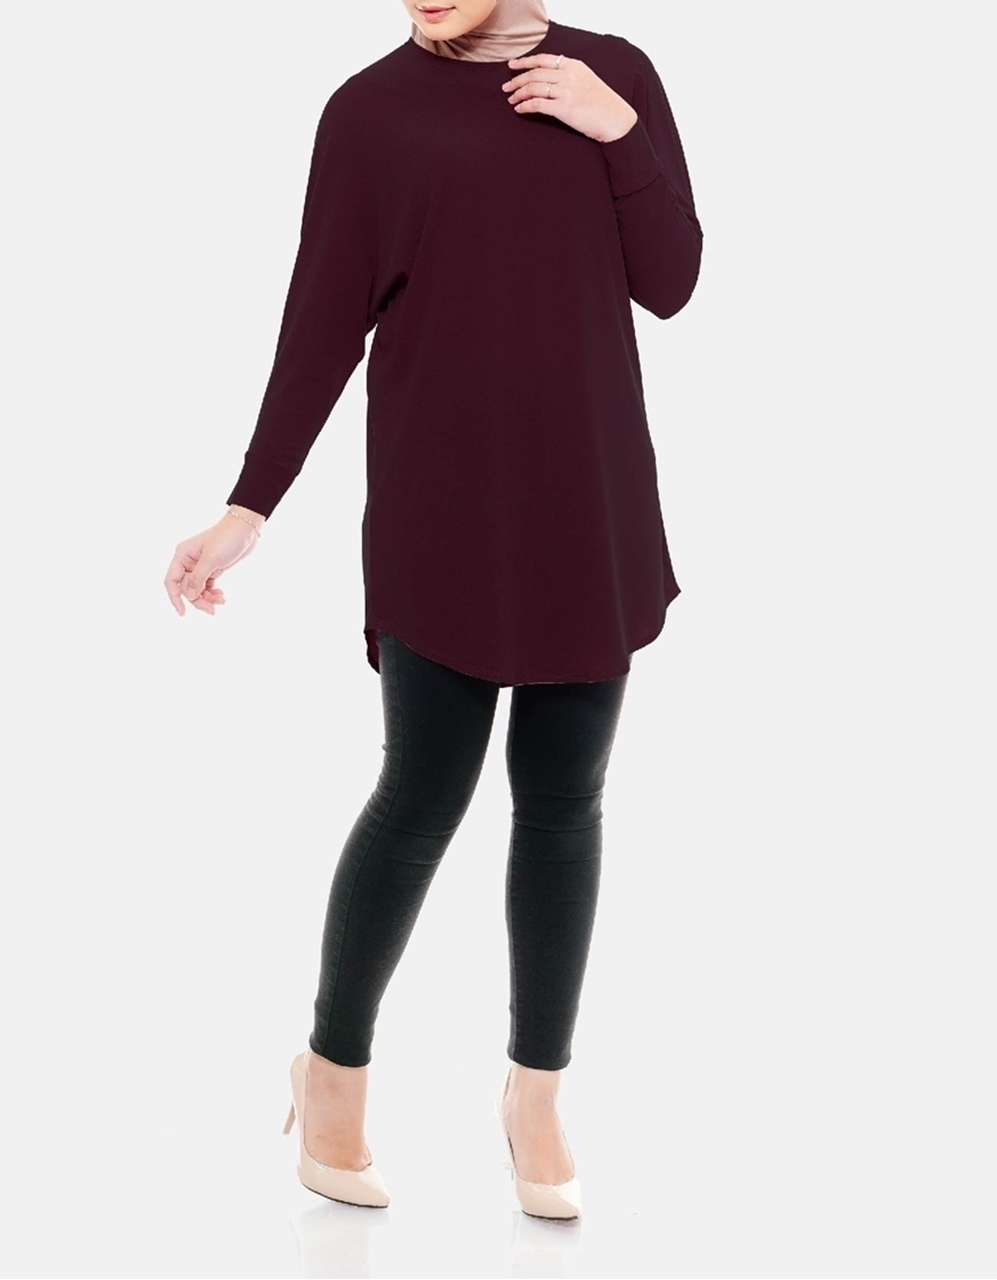 Picture of Sofea Yara Blouse in Shadow Purple